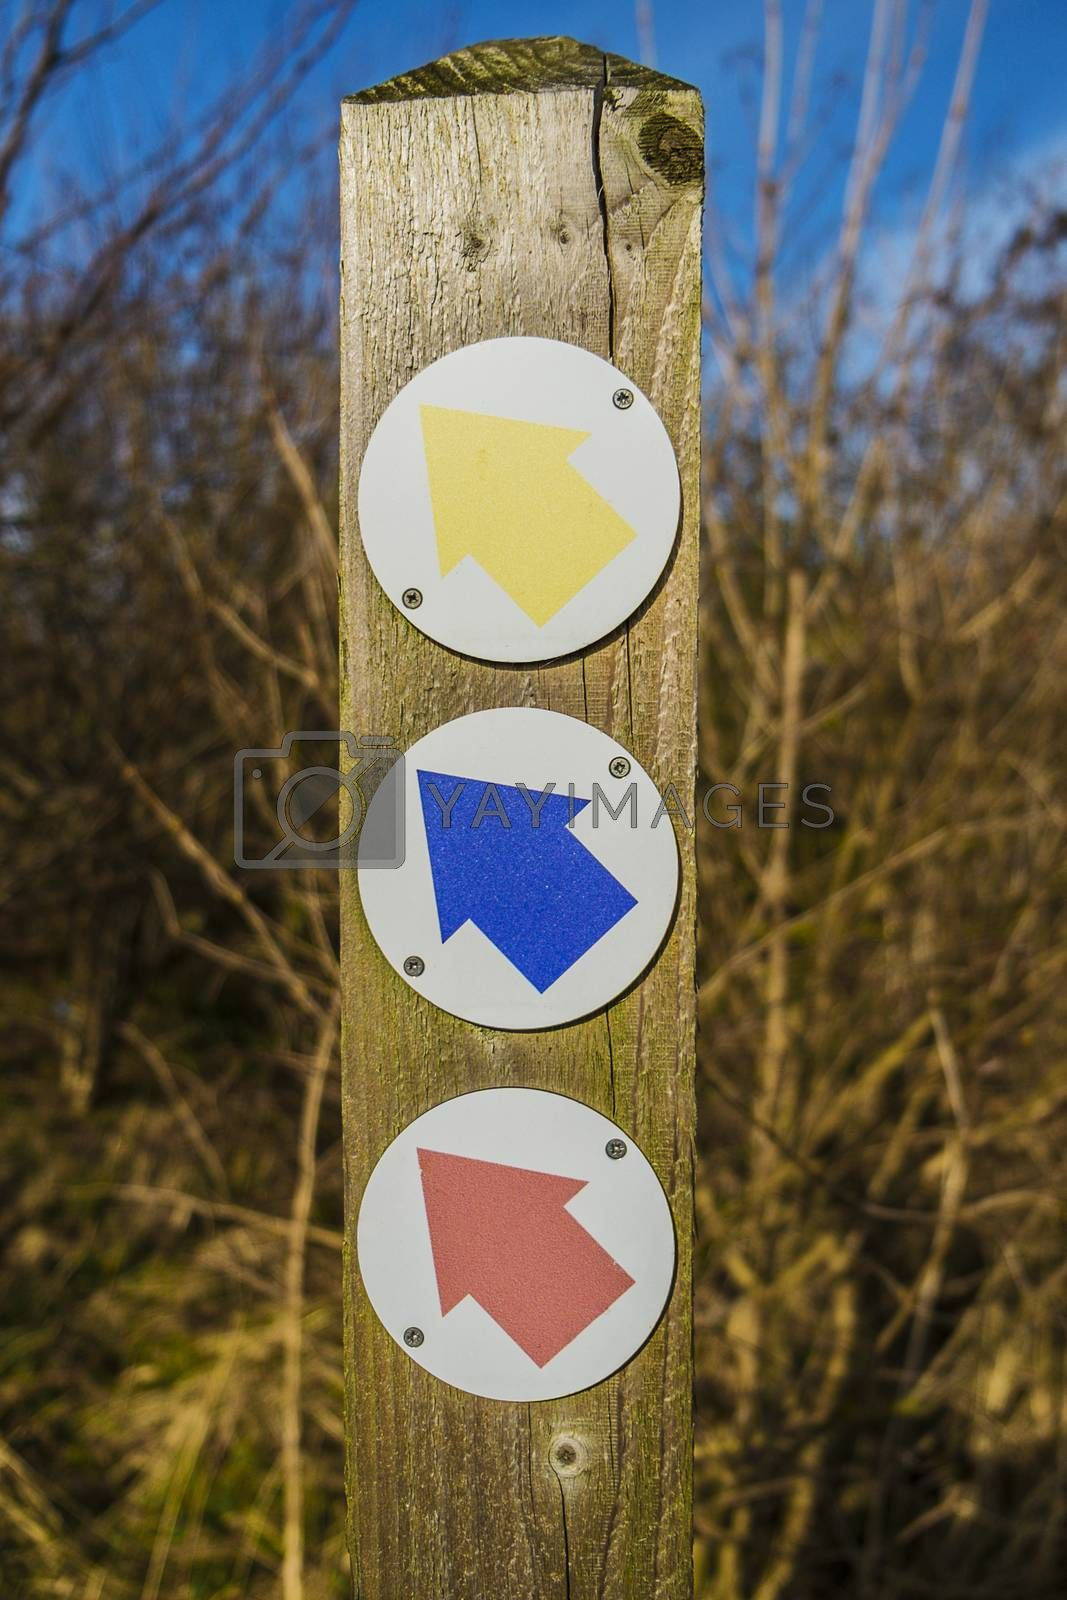 Royalty free image of yellow, blue and red arrow symbols on wooden post by sijohnsen